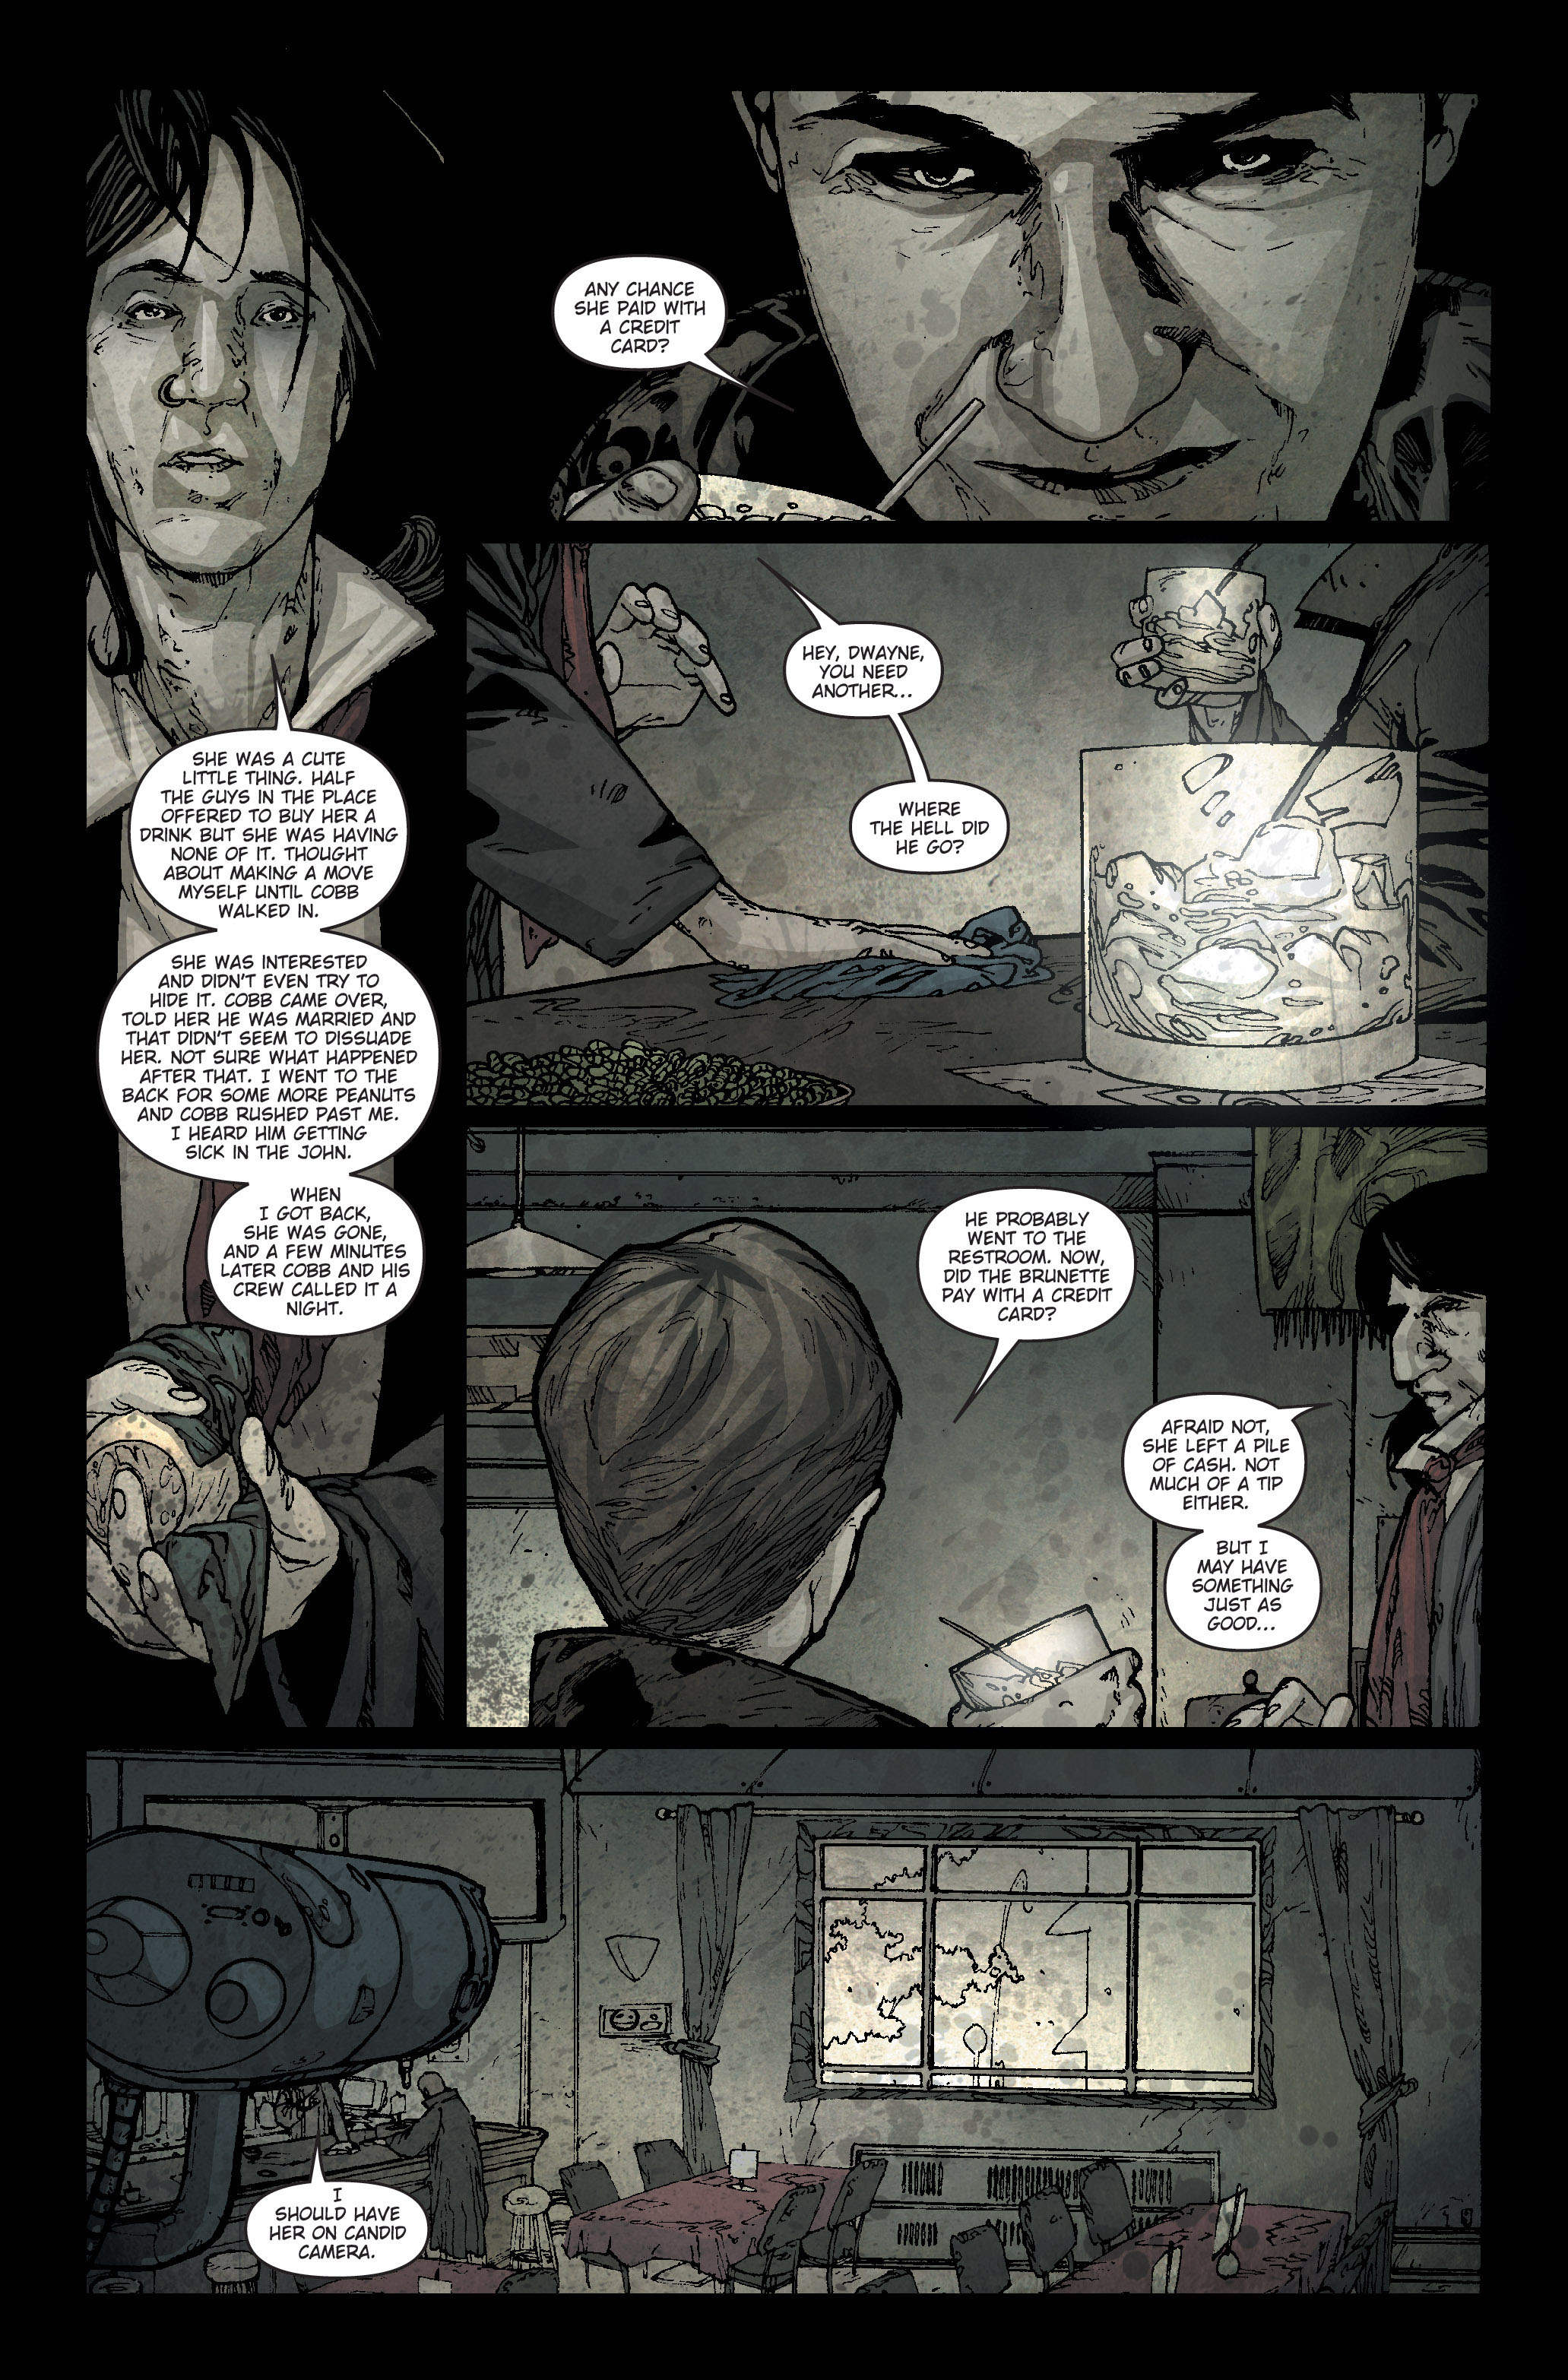 30 Days of Night: Spreading the Disease 1 Page 10